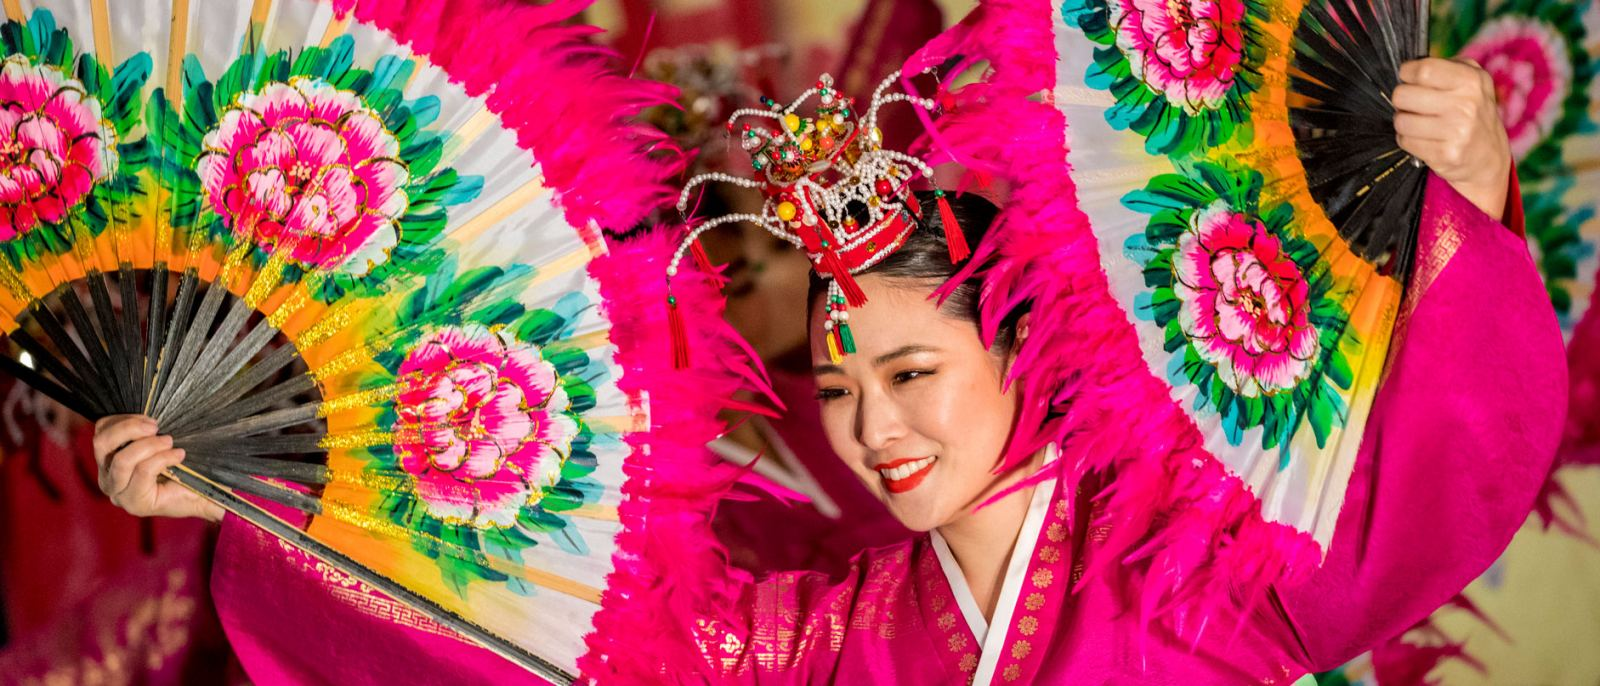 Korean fan dancer performs in the Lunar New Year Festival at the Port of Los Angeles